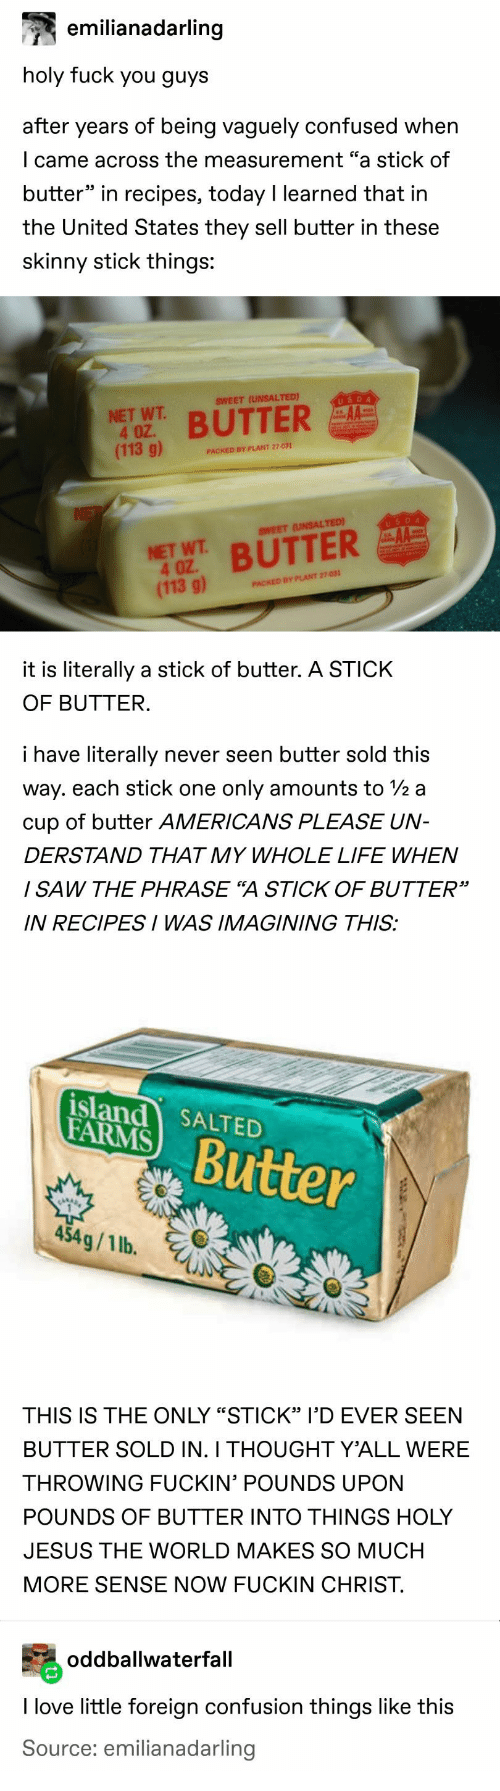 """farms: emilianadarling  holy fuck you guys  after years of being vaguely confused when  I came across the measurement """"a stick of  butter"""" in recipes, today I learned that in  the United States they sell butter in these  skinny stick things:  USDA  SWEET (UNSALTED)  NET WT  4 OZ.  (113 g)  BUTTER  PACKED BY PLANT 27-031  NE  USDA  AA  SWEET (UNSALTED)  NET WT BUTTER  4 OZ  (113 g)  PACKED BY PLANT 27-031  it is literally a stick of butter. A STICK  OF BUTTER.  i have literally  never seen butter sold this  way. each stick one  only amounts to 2 a  cup of butter AMERICANS PLEASE UN-  DERSTAND THAT MY WHOLE LIFE WHEN  I SAW THE PHRASE """"A STICK OF BUTTER""""  IN RECIPESI WAS IMAGINING THIS:  island SALTED  FARMS  Butter  454g/1 lb.  THIS IS THE ONLY """"STICK"""" I'D EVER SEEN  BUTTER SOLD IN. I THOUGHT Y'ALL WERE  THROWING FUCKIN' POUNDS UPON  POUNDS OF BUTTER INTO THINGS HOLY  JESUS THE WORLD MAKES SO MUCH  MORE SENSE NOW FUCKIN CHRIST  oddballwaterfall  I love little foreign confusion things like this  Source: emilianadarling"""